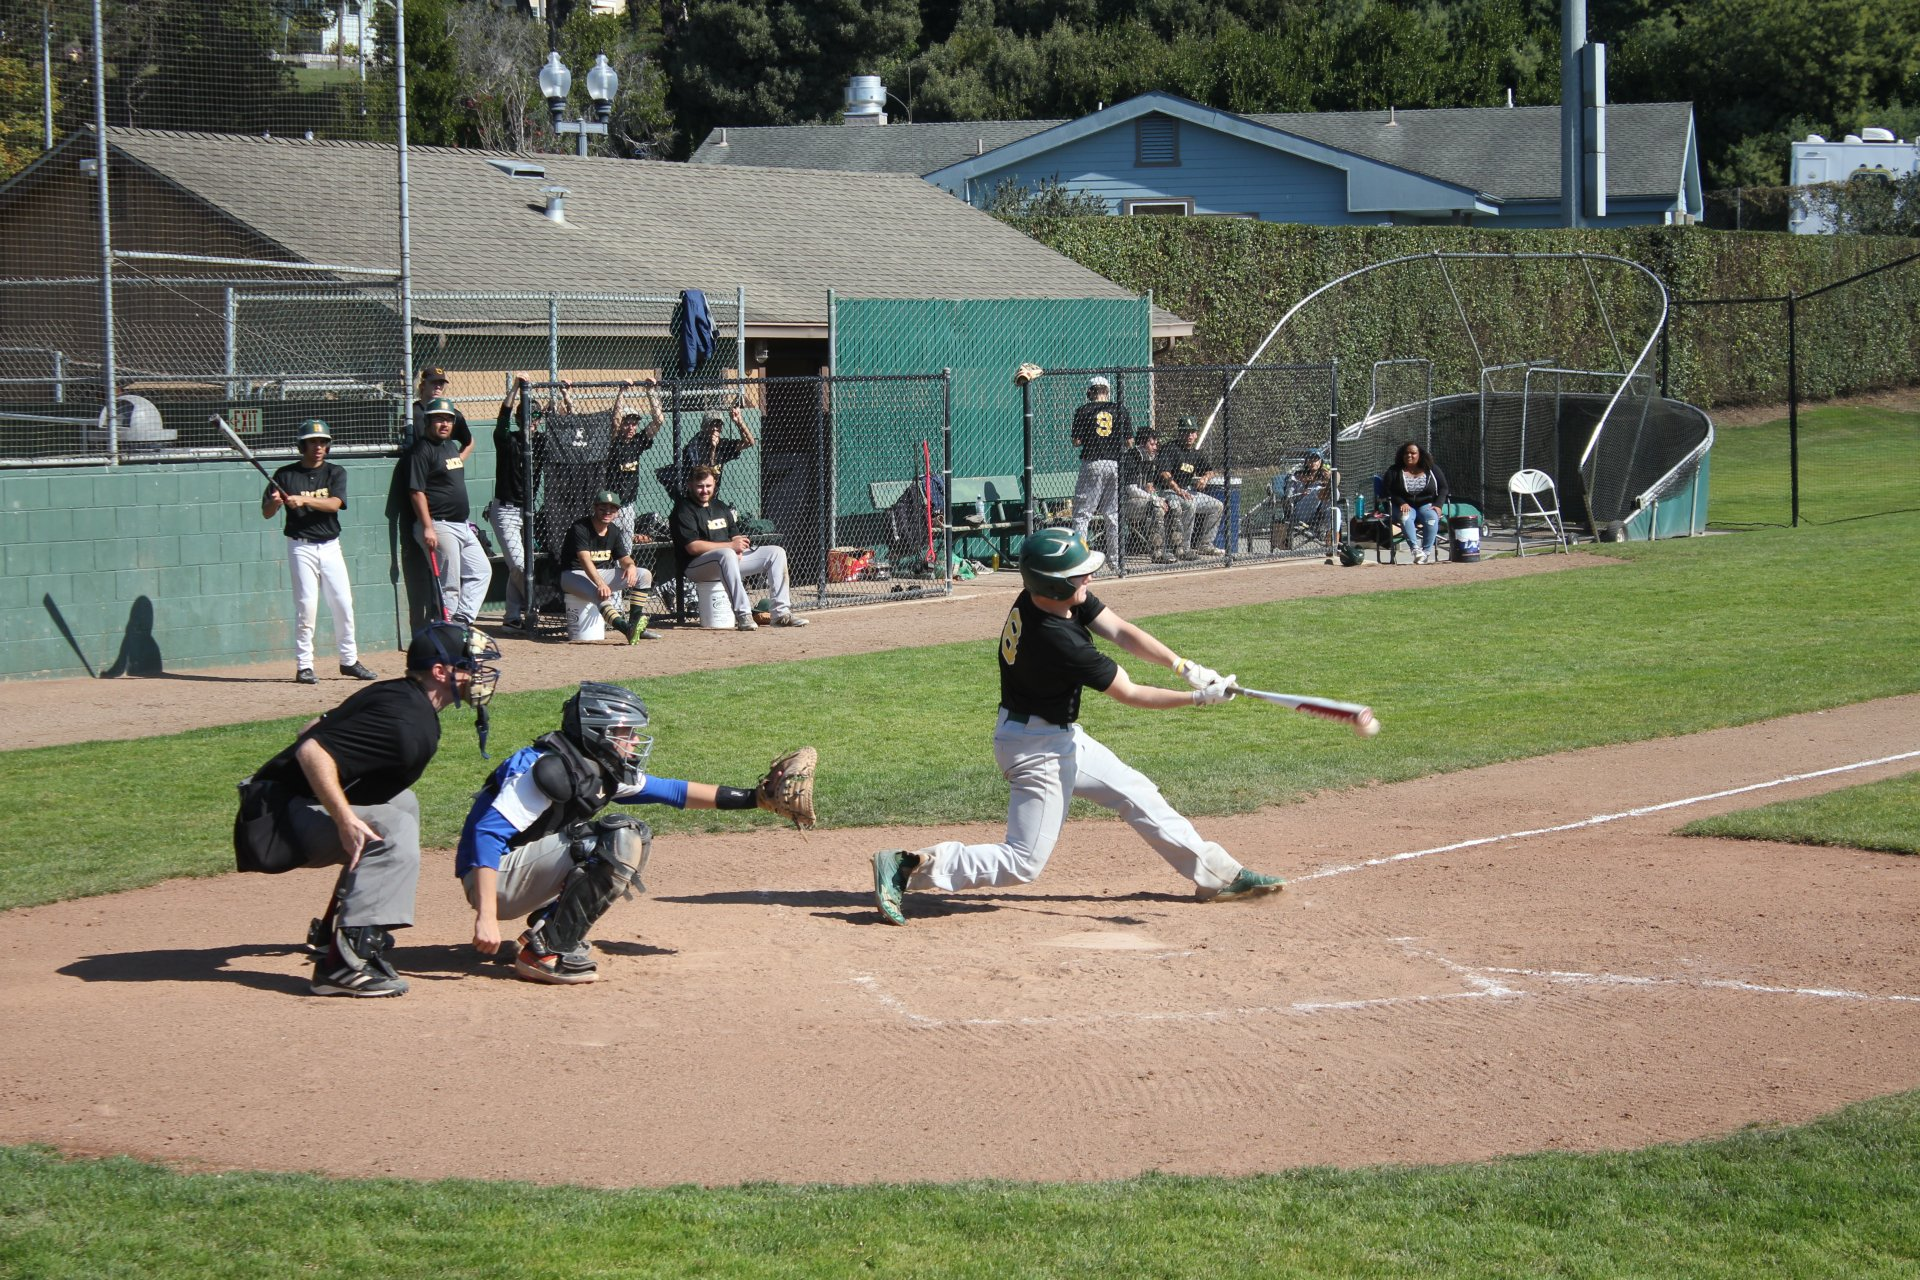 Hitter Willie Cestarollo strikes a fastball thrown by a Humboldt Eagles pitcher, at the Arcata Ballpark on Oct. 13. | Photo by Skye Kimya